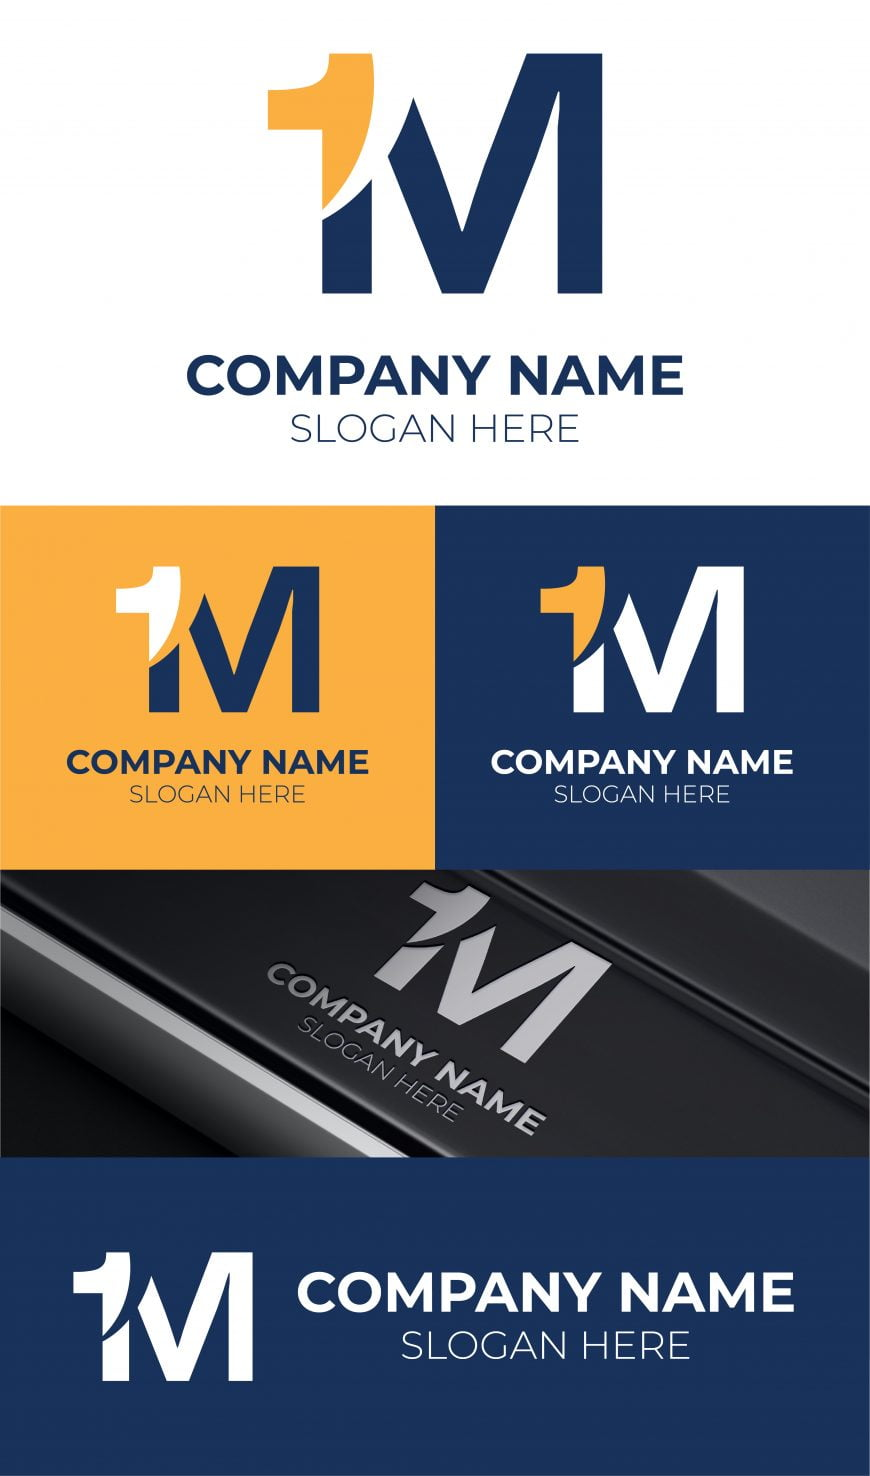 1M-LOGO-DESIGN-TEMPLATE-FREE-VECTOR-scaled